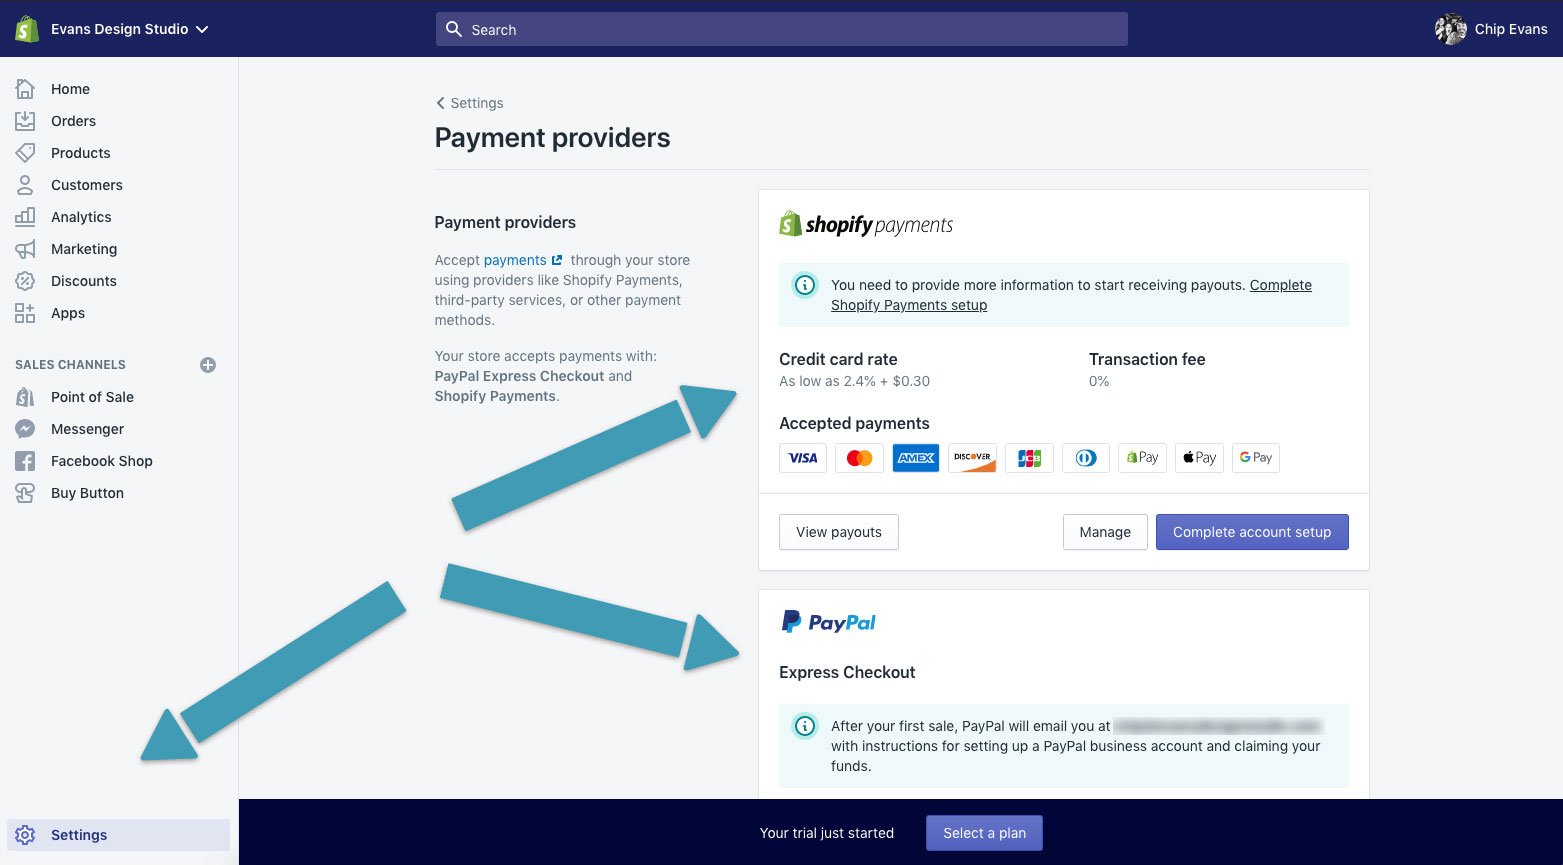 Setting up payment providers by completing the shopify form and setting up PayPal if it isn't already connected.